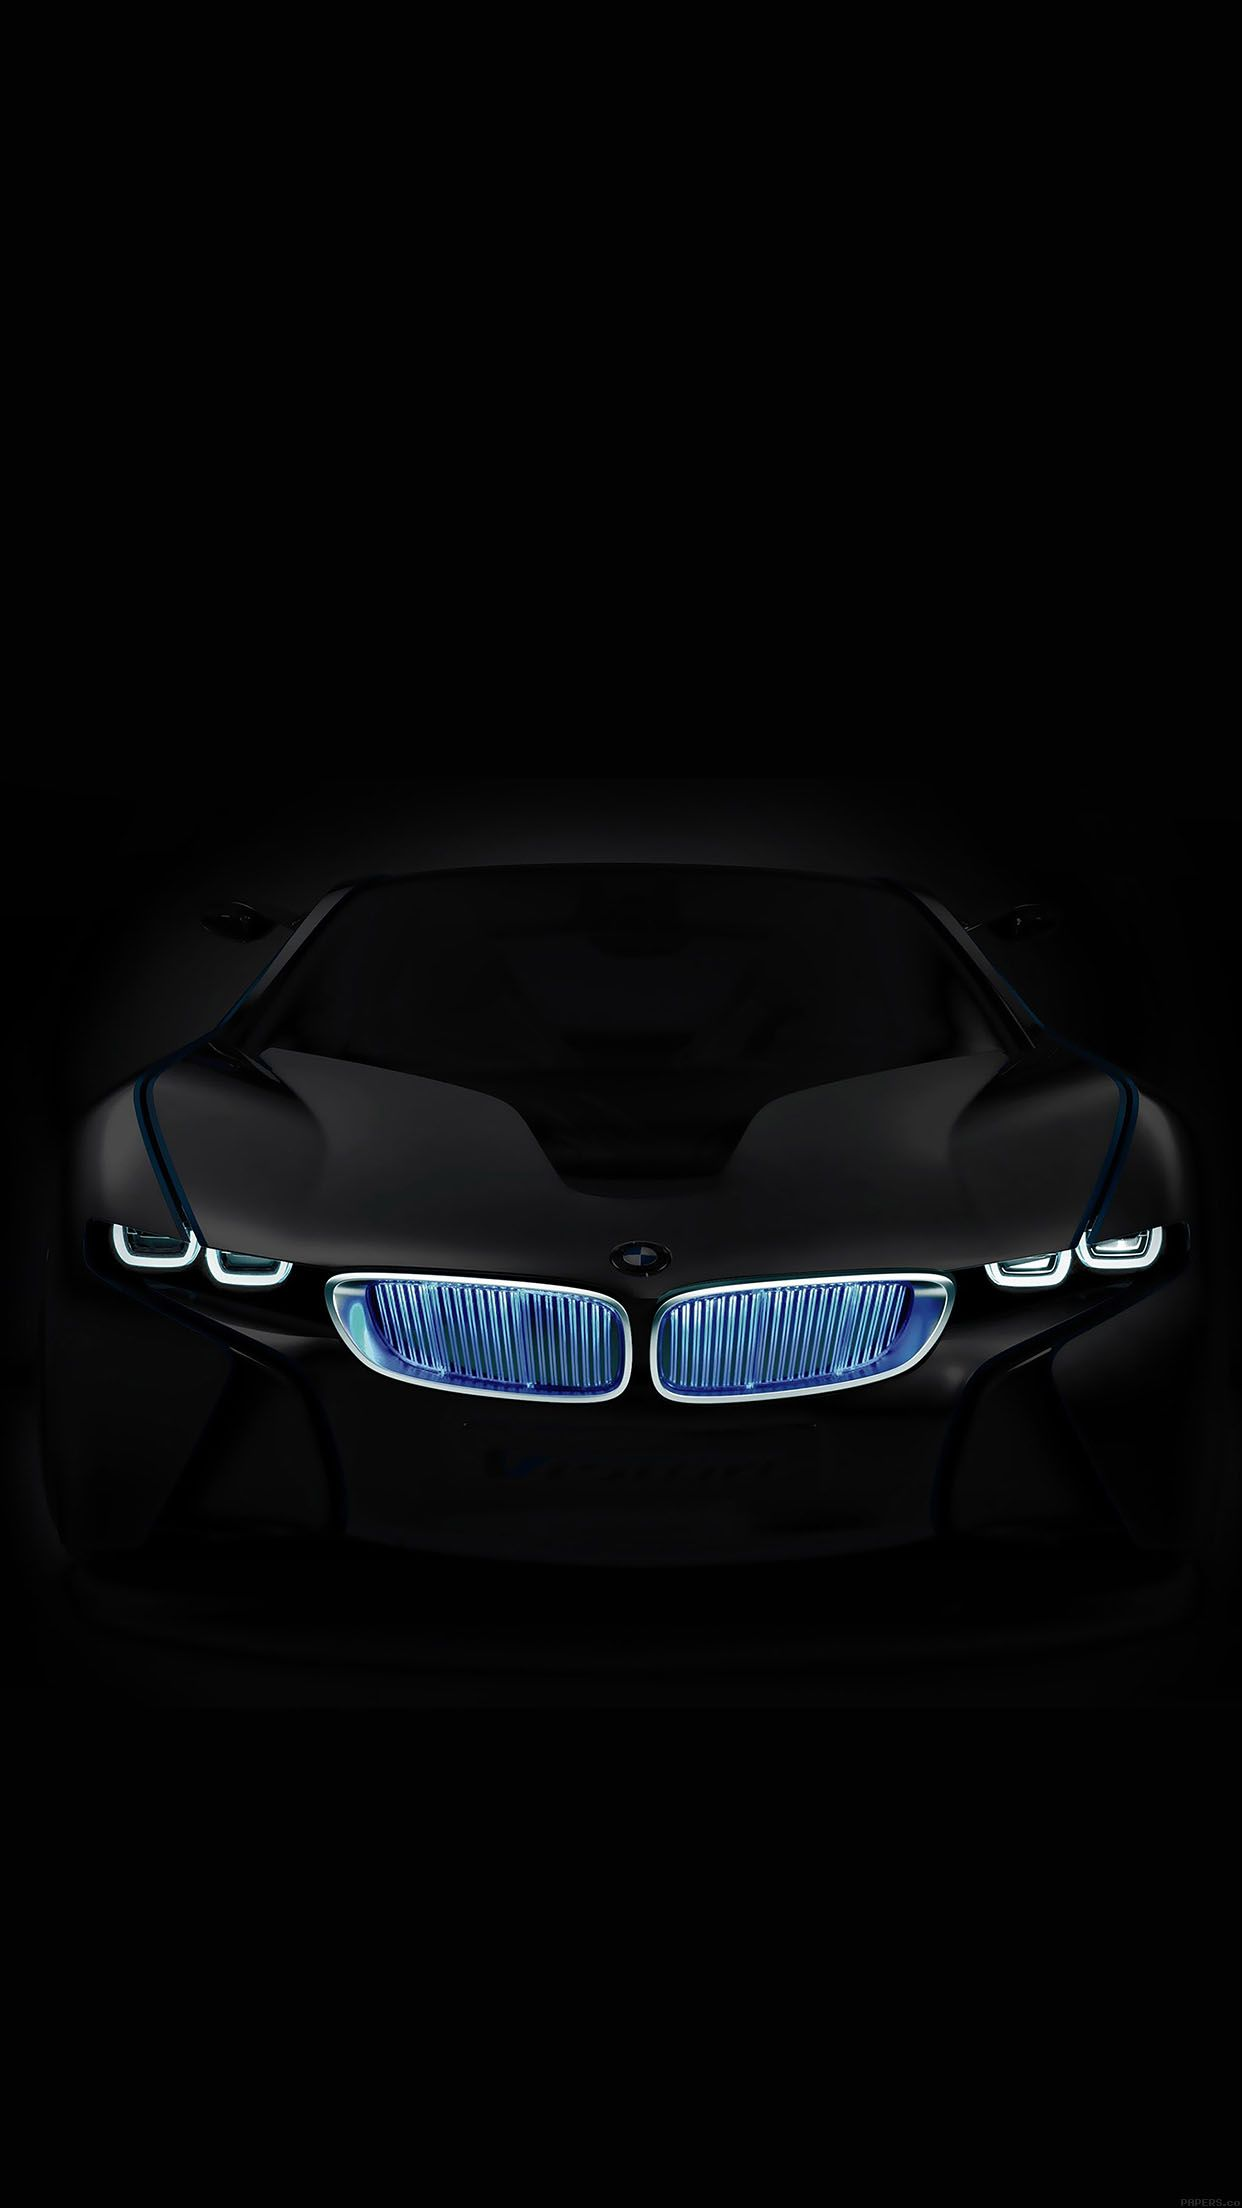 Bmw Logo Iphone Wallpaper With Images Luxury Car Logos Bmw